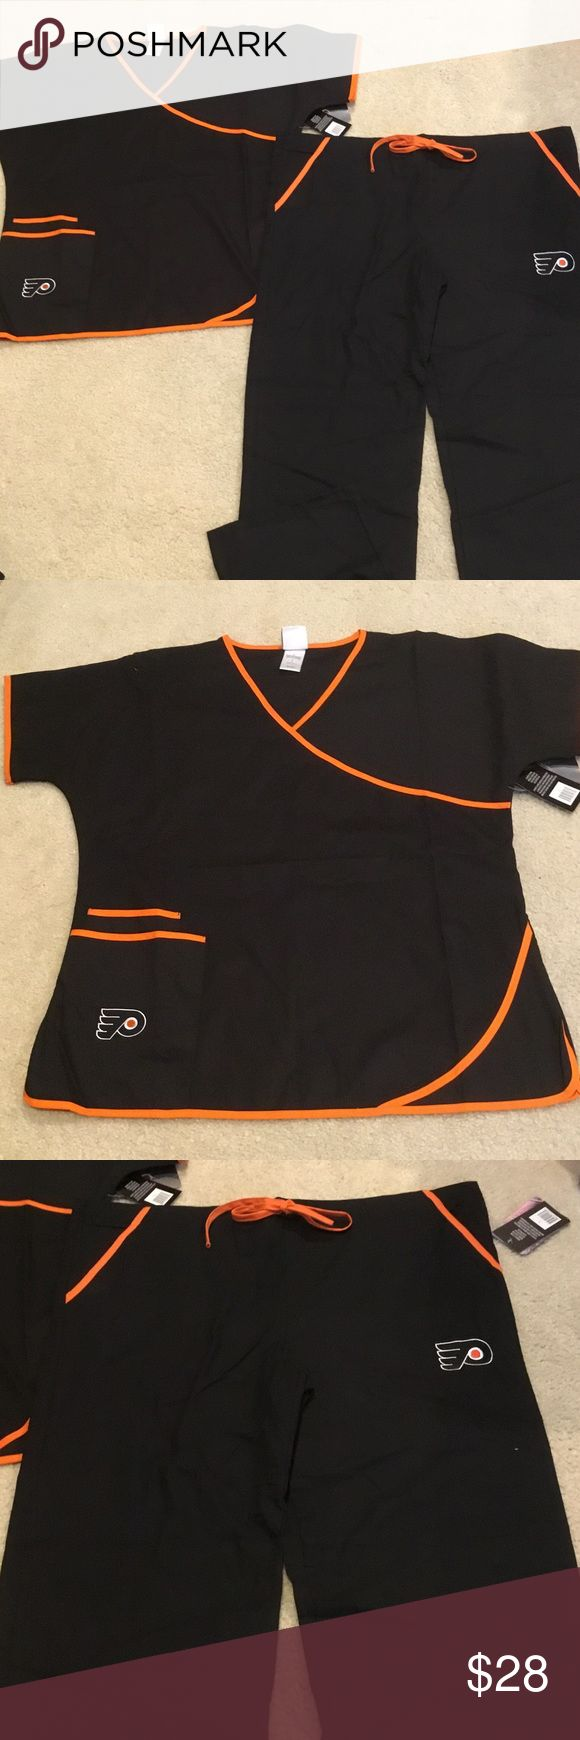 "NWT Philadelphia Flyers Scrubs Set Size Large NWT Philadelphia Flyers Scrub Set - top and bottom size Large. Top and bottom are 65% polyester, 35% cotton. Top and bottom are black with orange accents. Top has two pockets with Flyers logo on the pocket. Bottom has two pockets and the Flyers logo on the left leg. Top bust measures approx. 25"" across. Pants measure waist to hem 42"". Pants have an orange drawstring. Scrub Dudz Other"